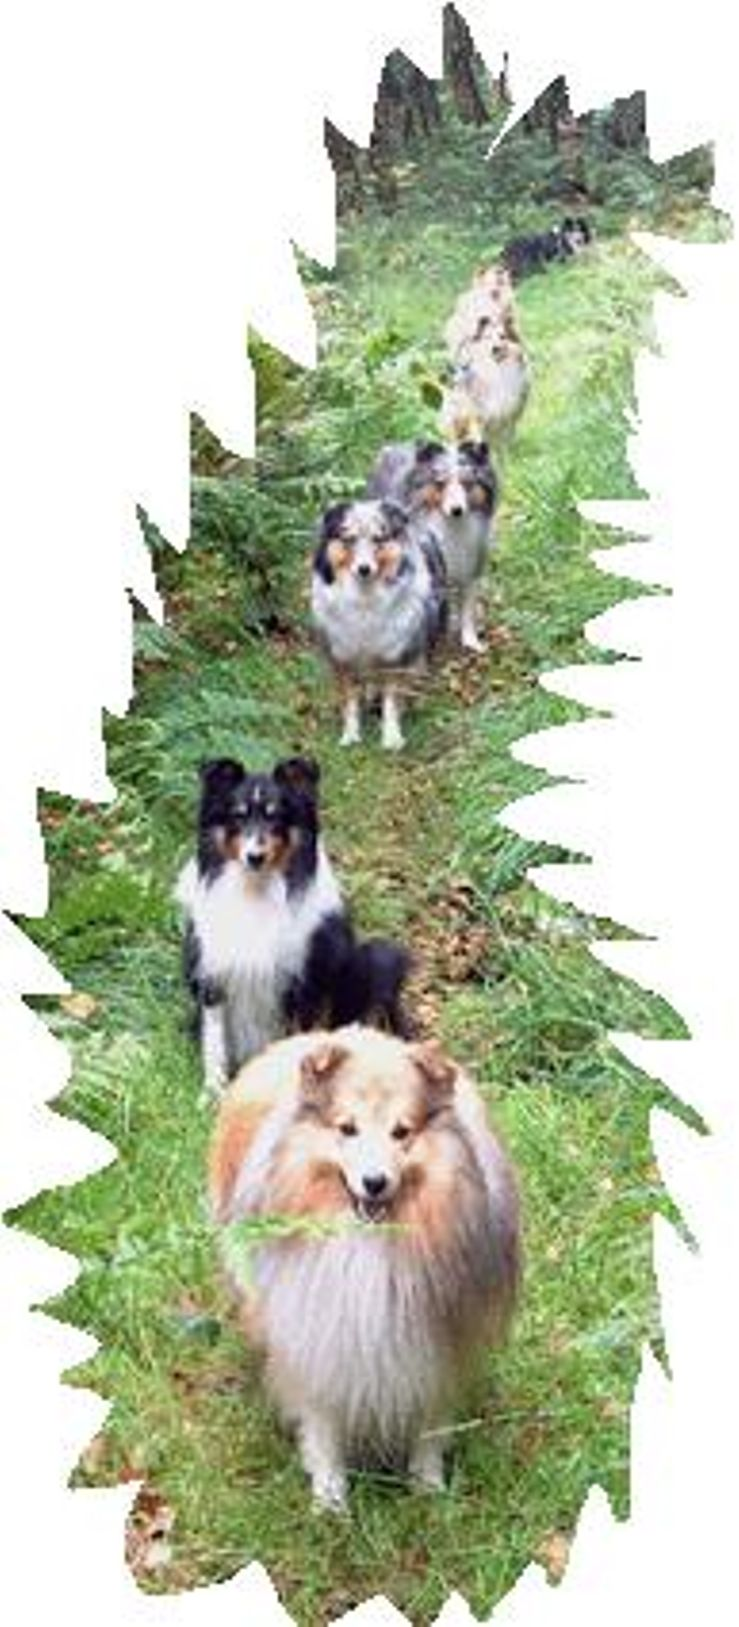 Shetland Sheepdog Breeders Near You With Puppies For Sale